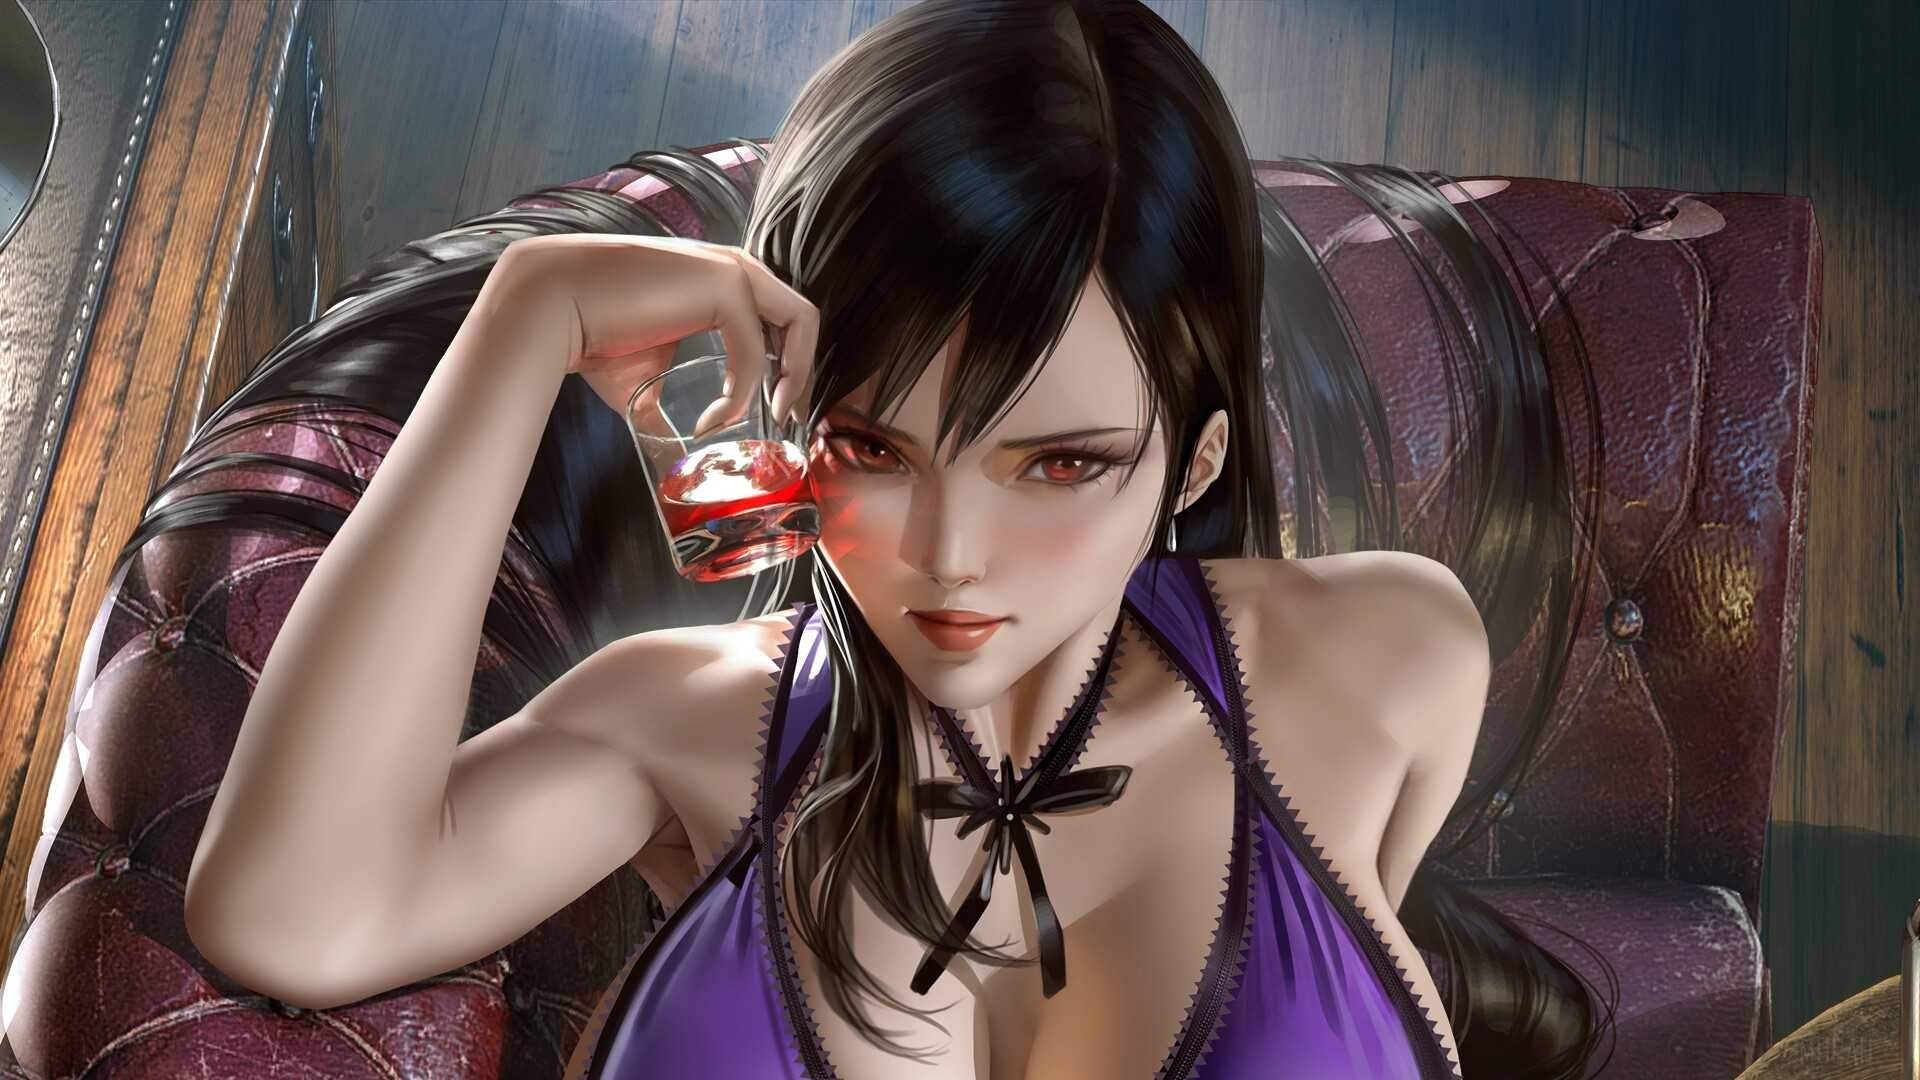 Tifa Lockhart Wallpaper 1